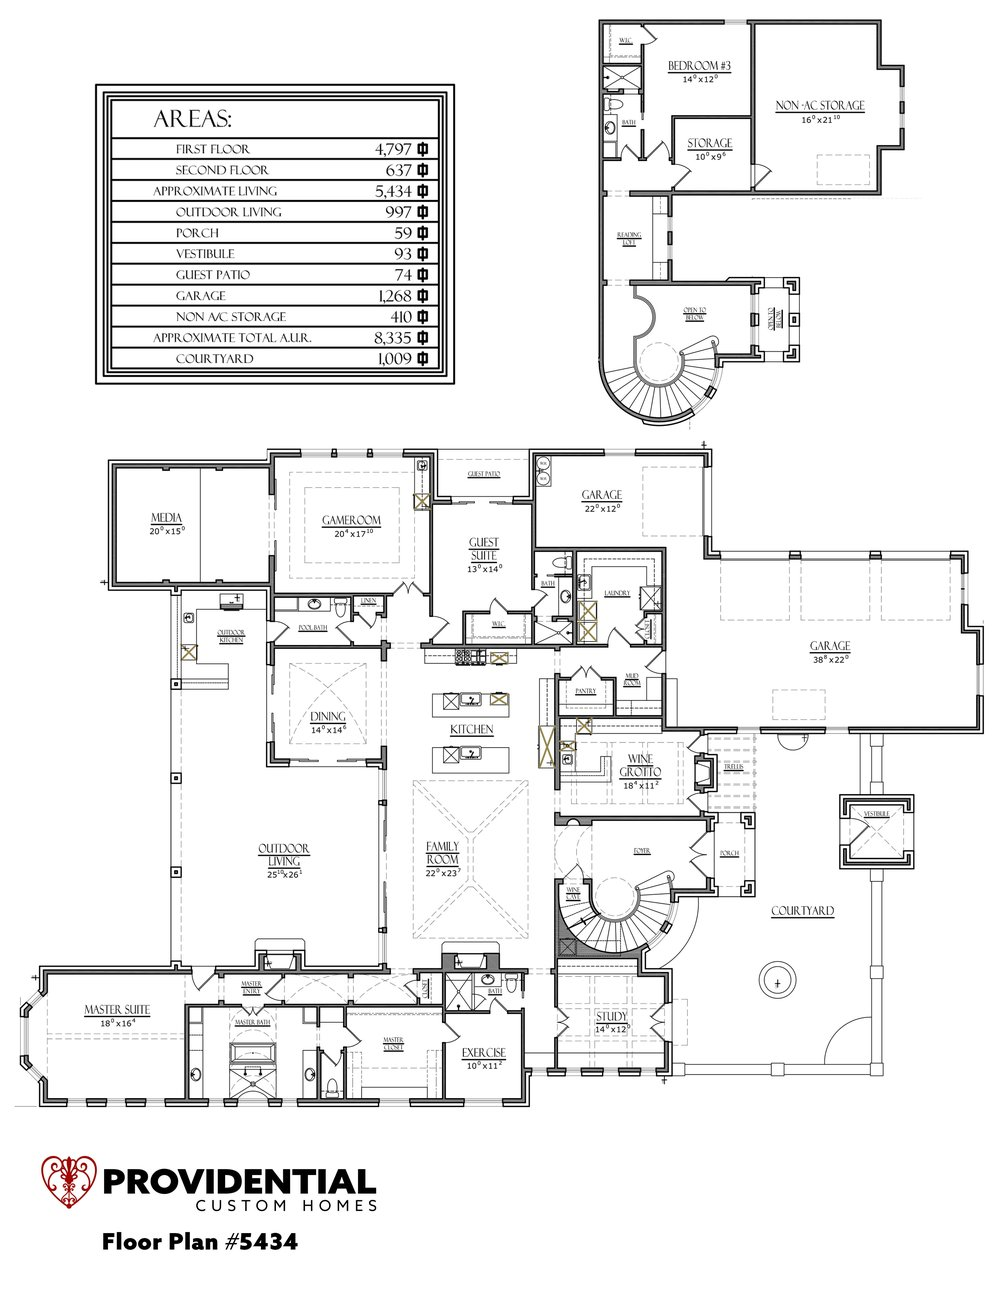 The FLOOR PLAN #5434.jpg